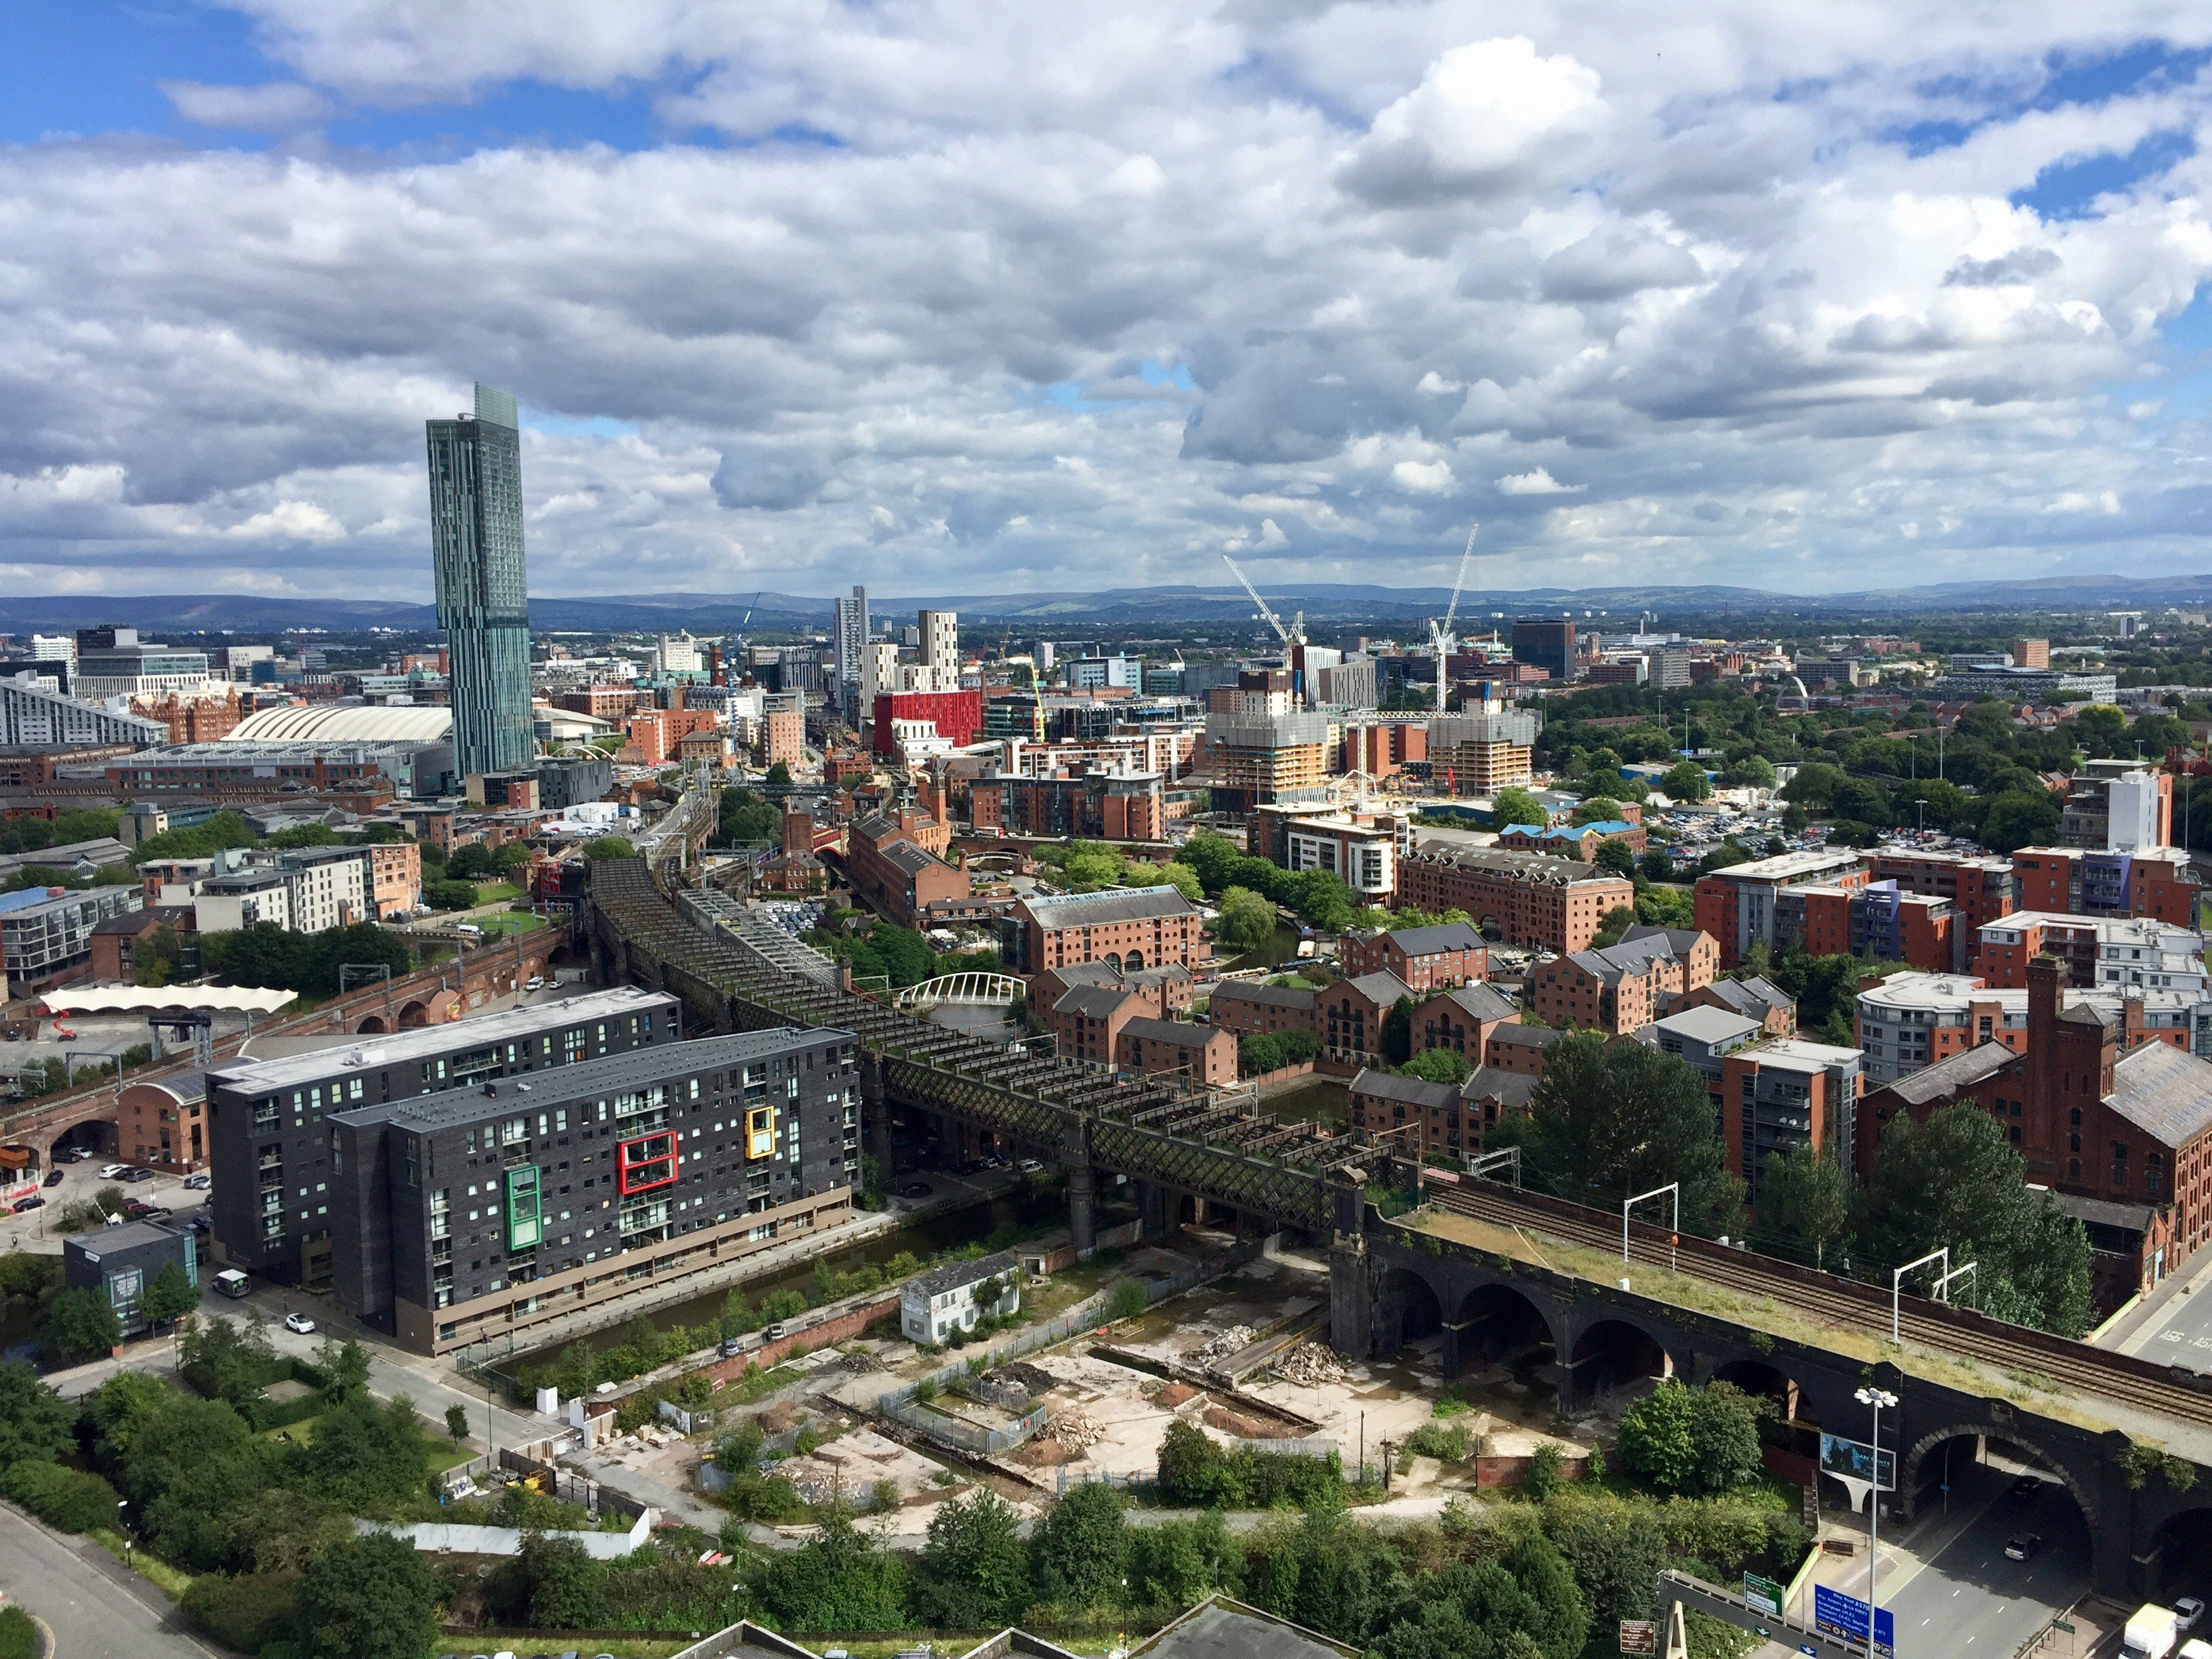 Manchester skyline in August 2017 viewing the Owen Street building site where RECO Hoist Hire & Sales provided construction hoists